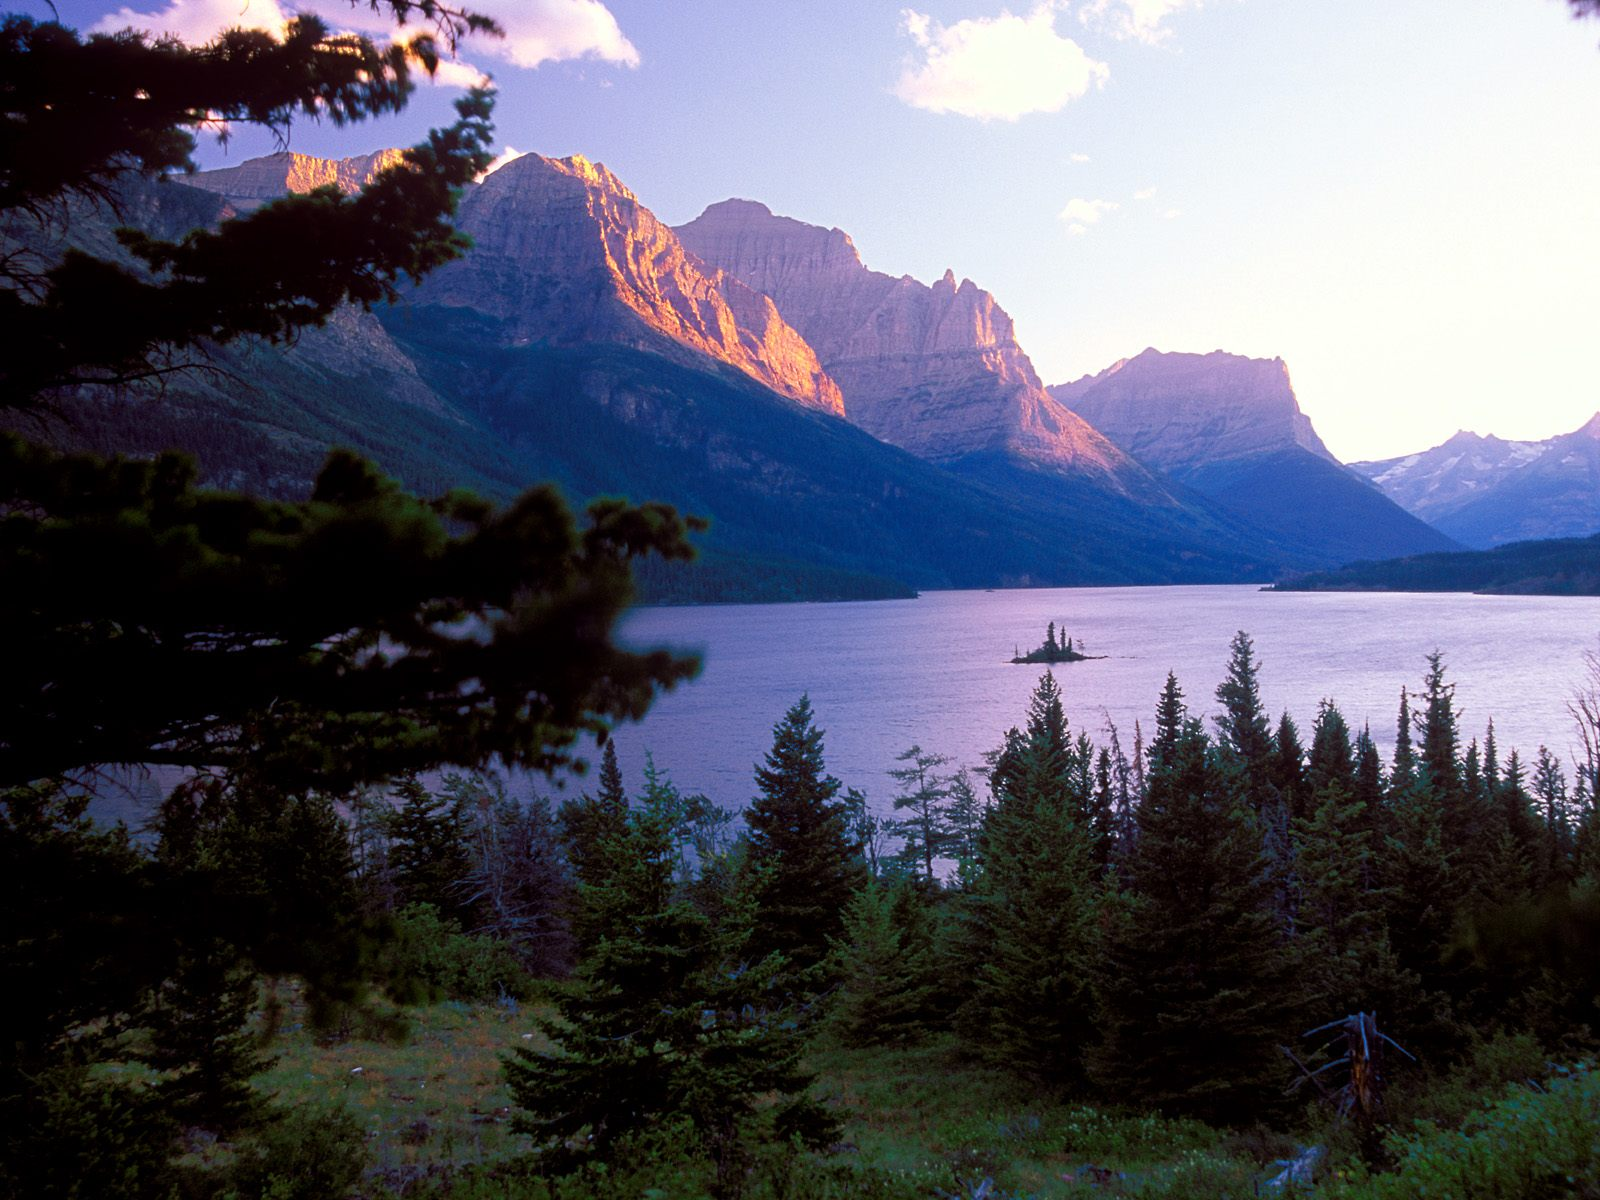 east glacier park online hookup & dating A complete list of east glacier park campgrounds and rv parks -- with detailed descriptions, guest reviews and maps -- for camping in east glacier park, montana.